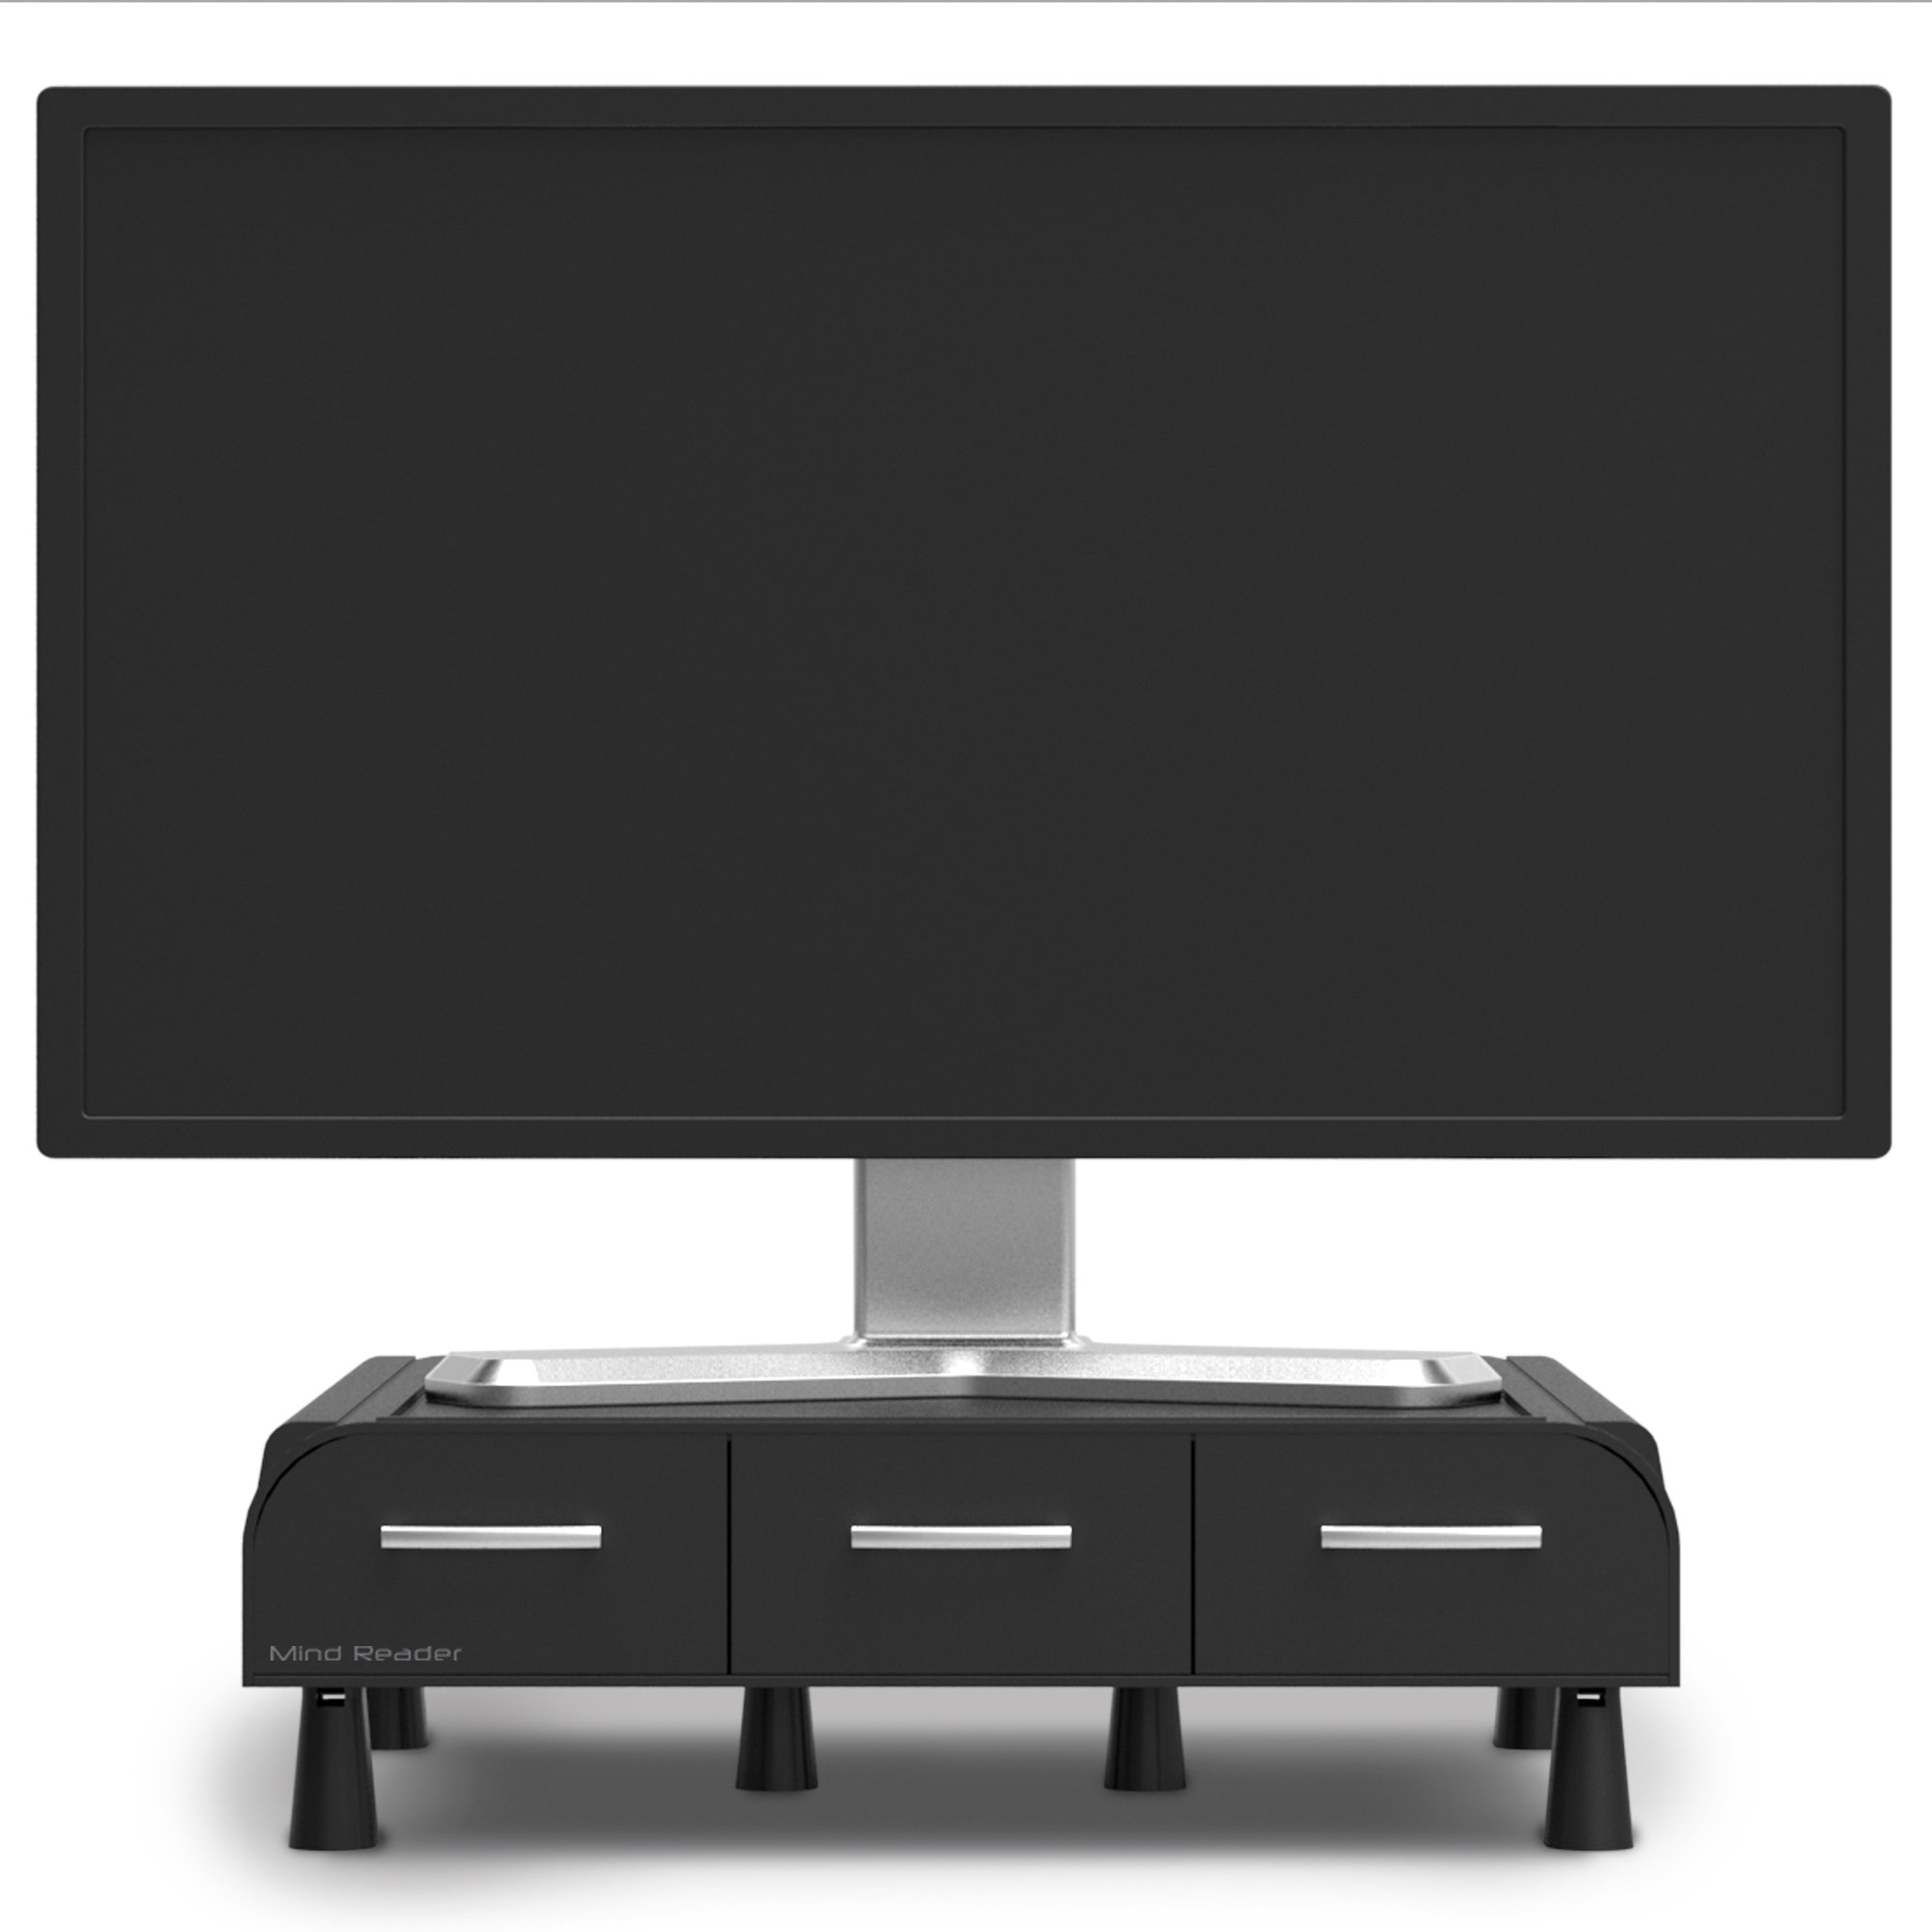 Mind Reader PC, Laptop, IMAC Monitor Stand and Desk Organizer, Black by Mind Reader (Image #3)